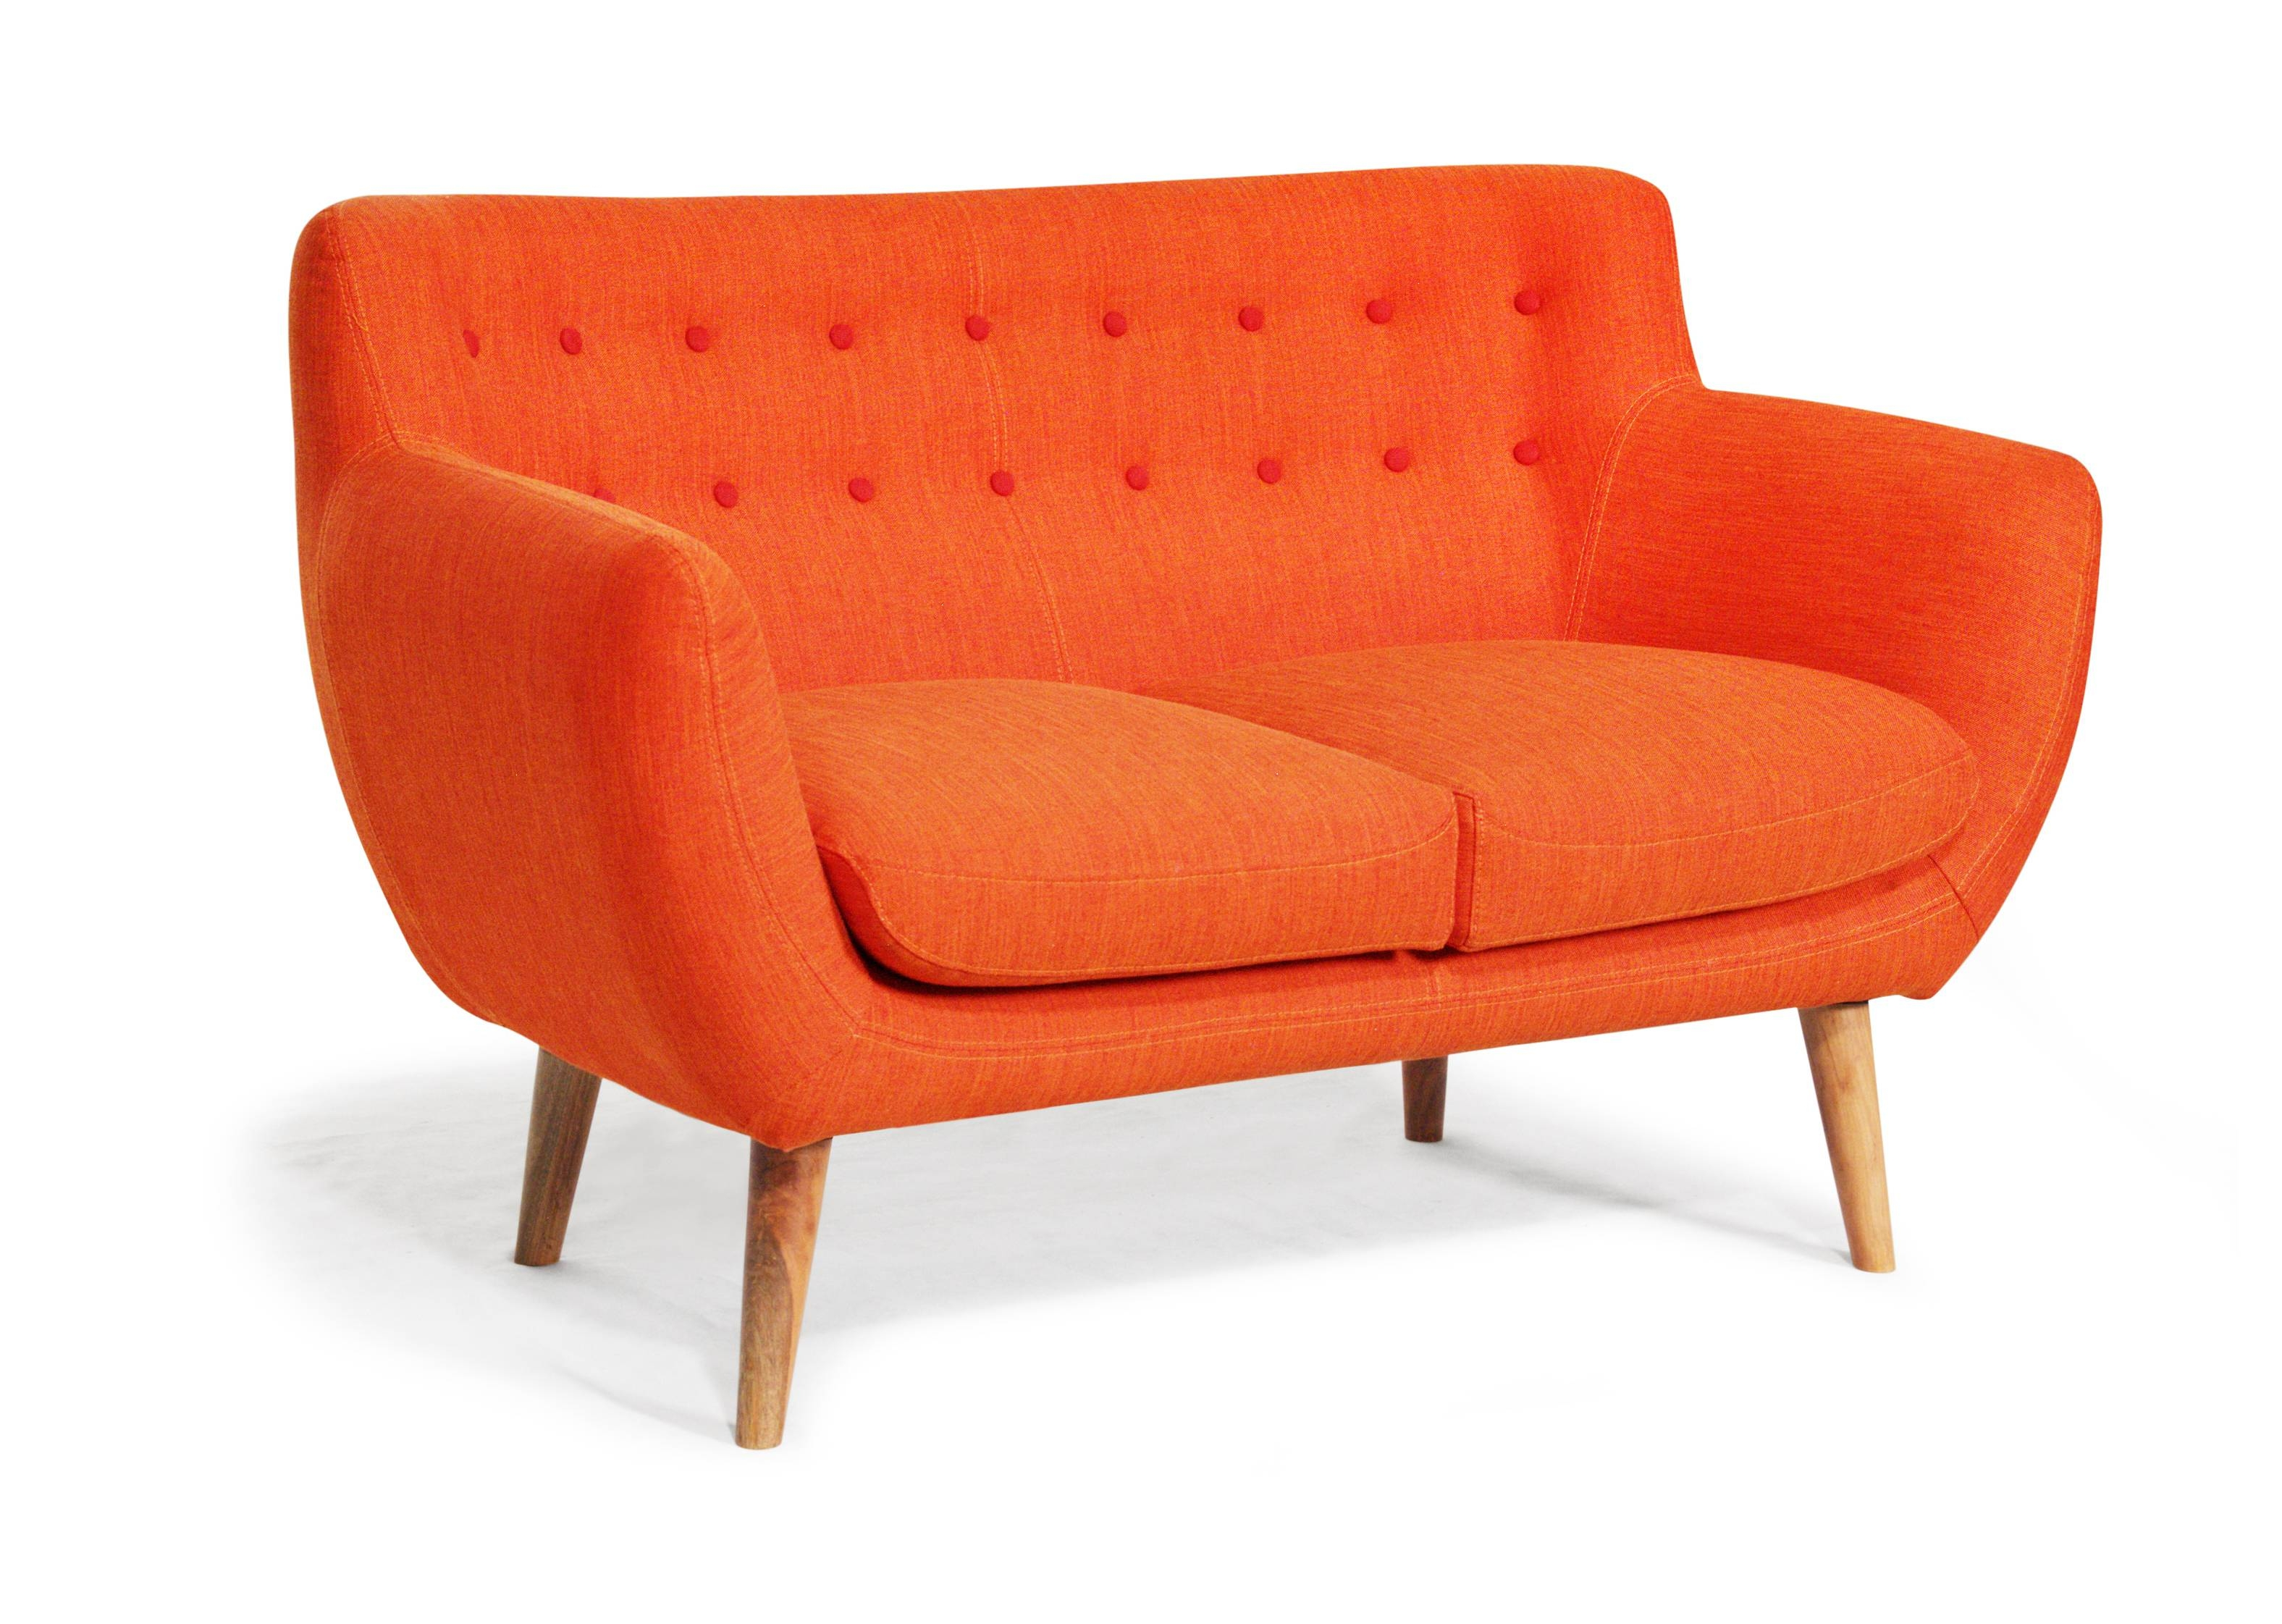 Furniture Designing Home View Rukle Dashing Orange Sofa For ~ Idolza Intended For Orange Sofa Chairs (View 6 of 15)